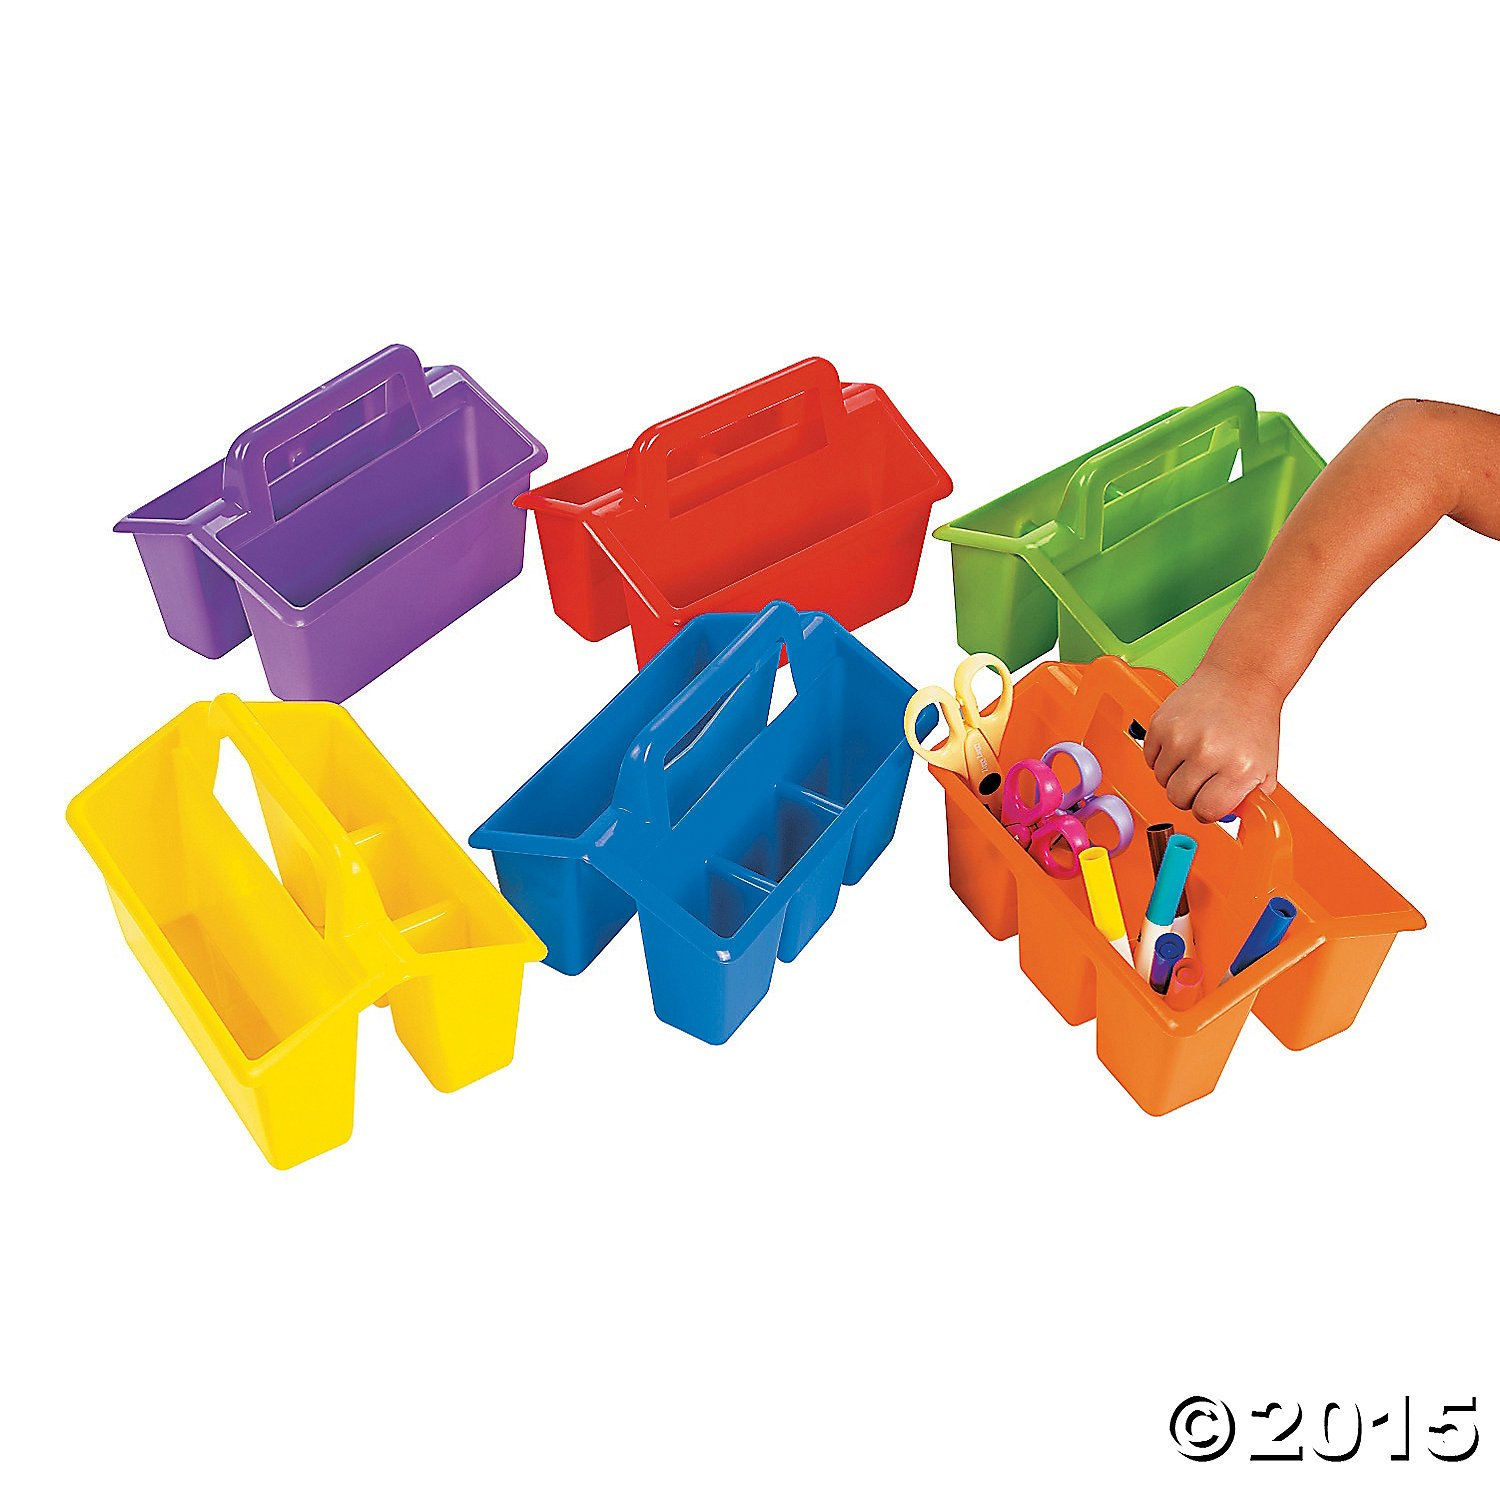 Awesome Table Caddy Set Part - 7: Amazon.com : Classroom Storage Caddies - Office Fun U0026 Office Stationery By  Oriental Trading Company, 6 Pack (Colors May Vary) : Office Products